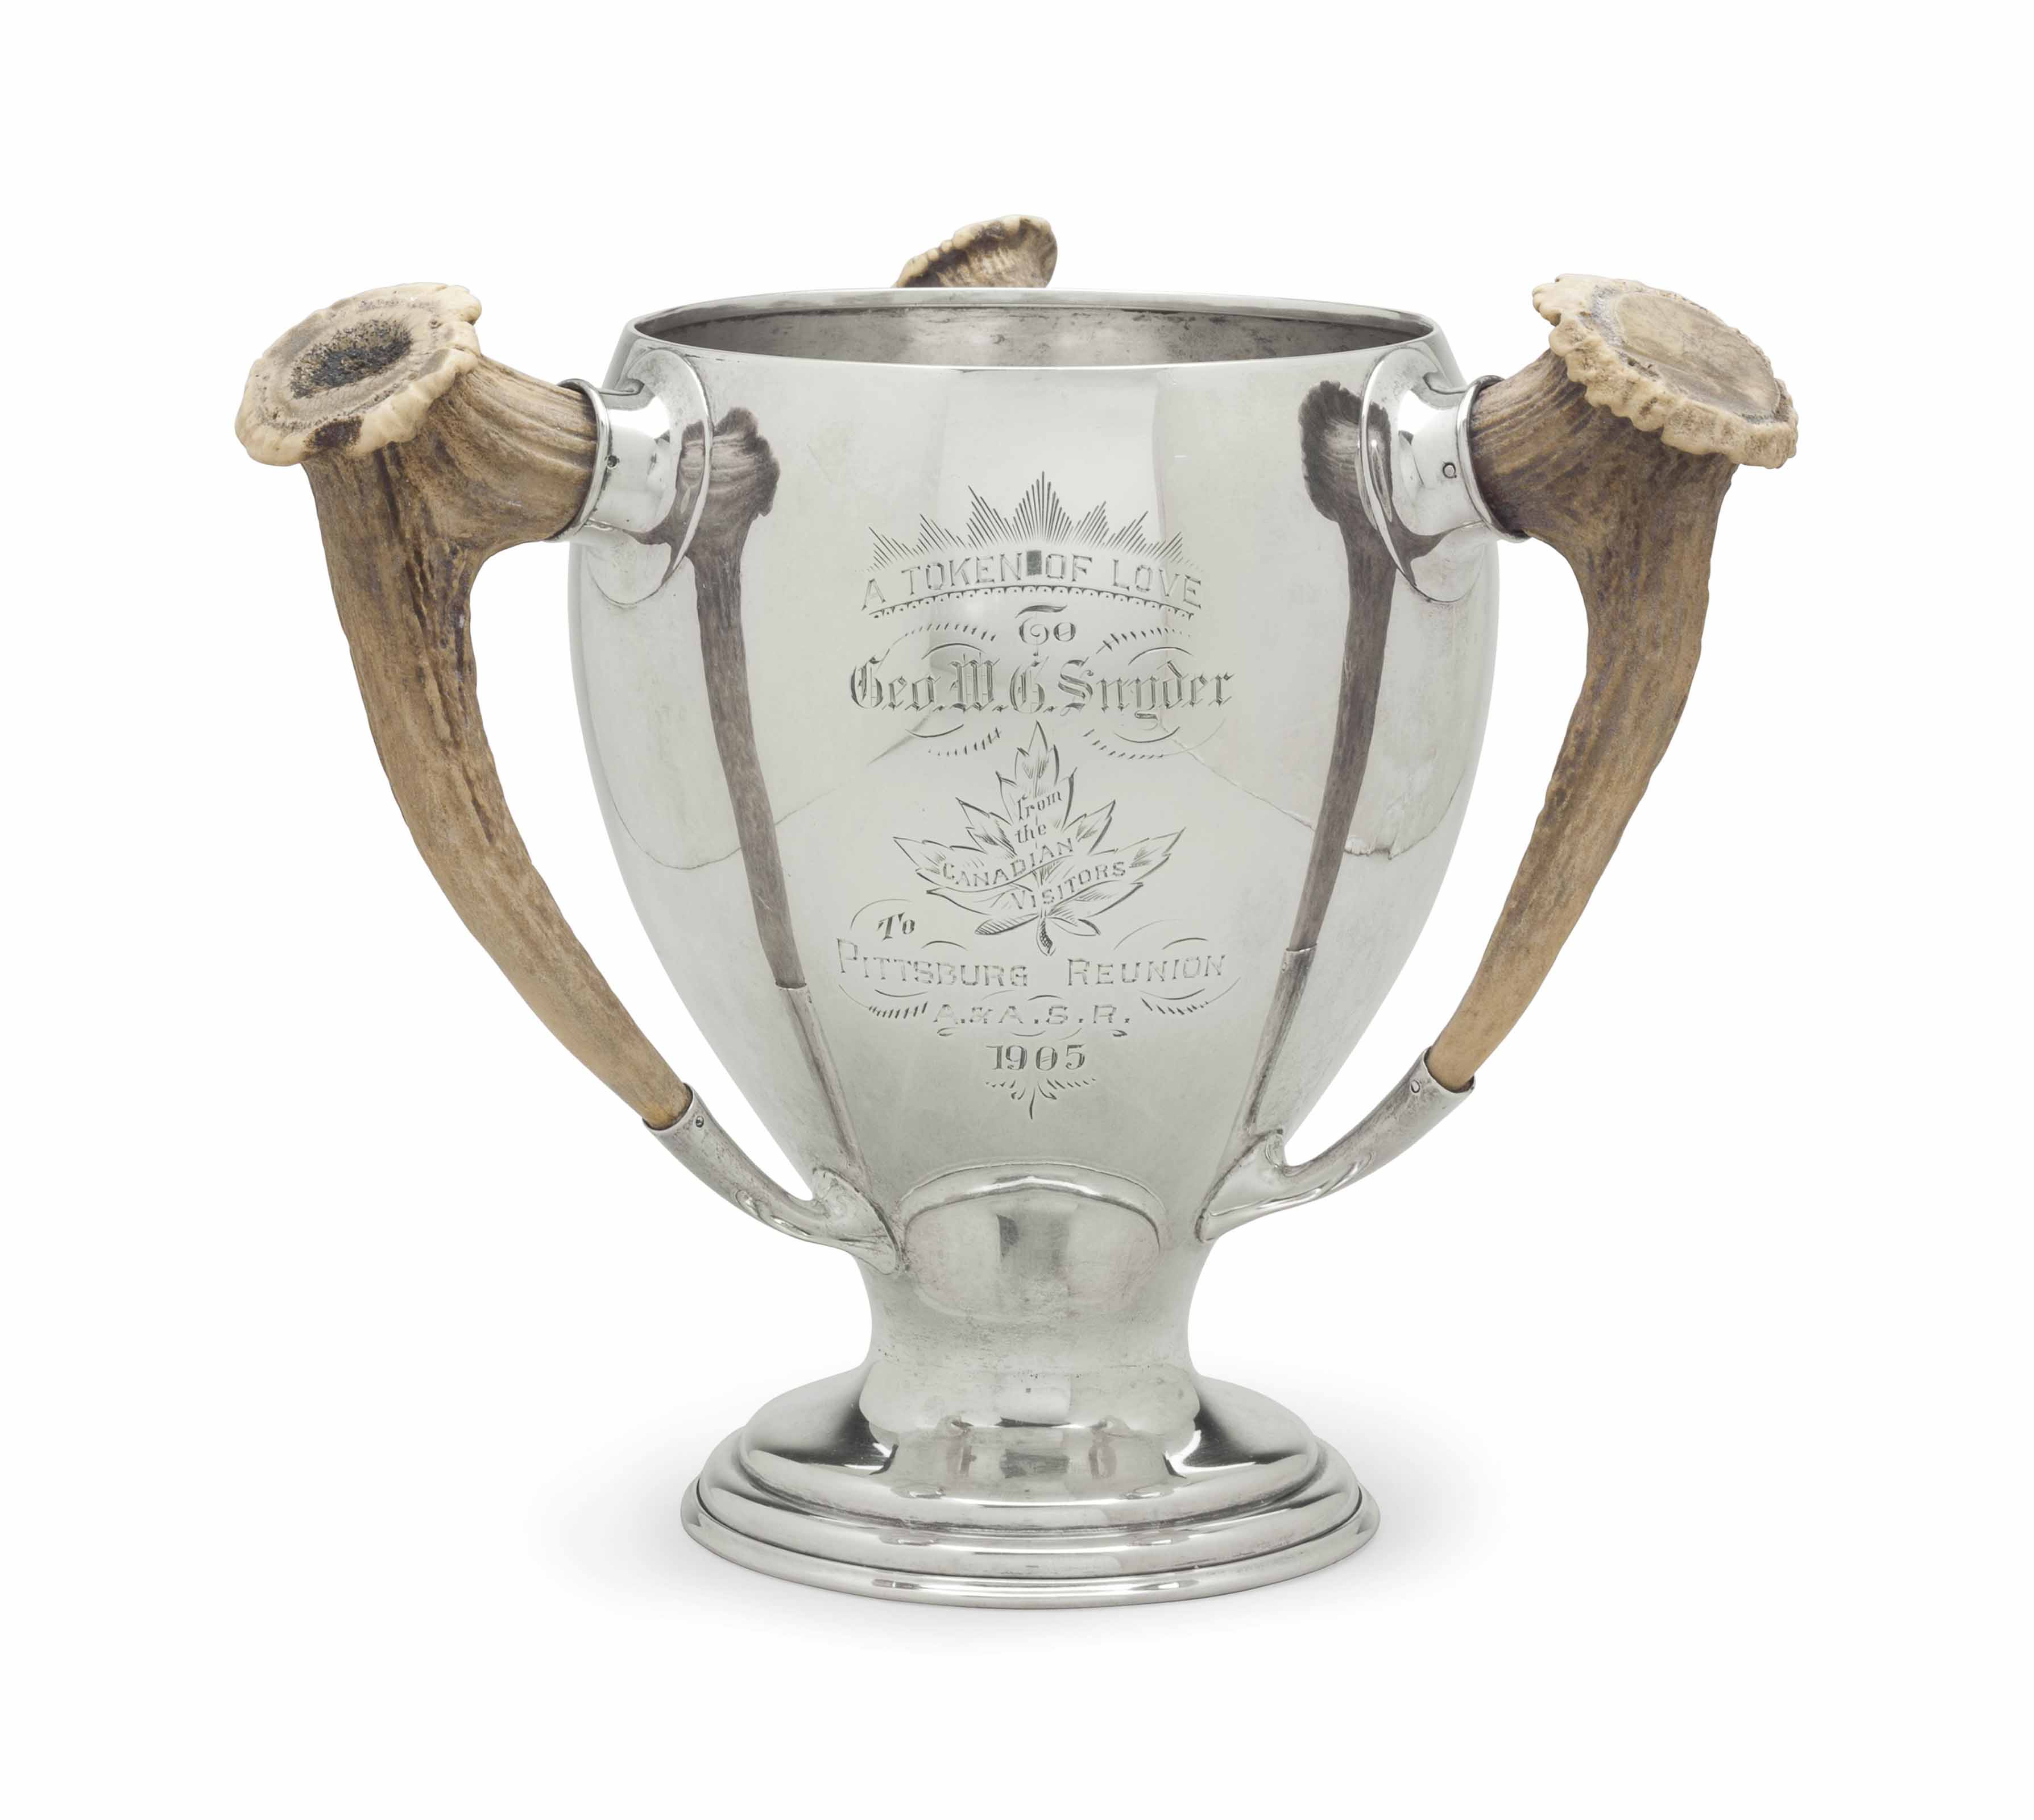 A CANADIAN SILVER LOVING CUP